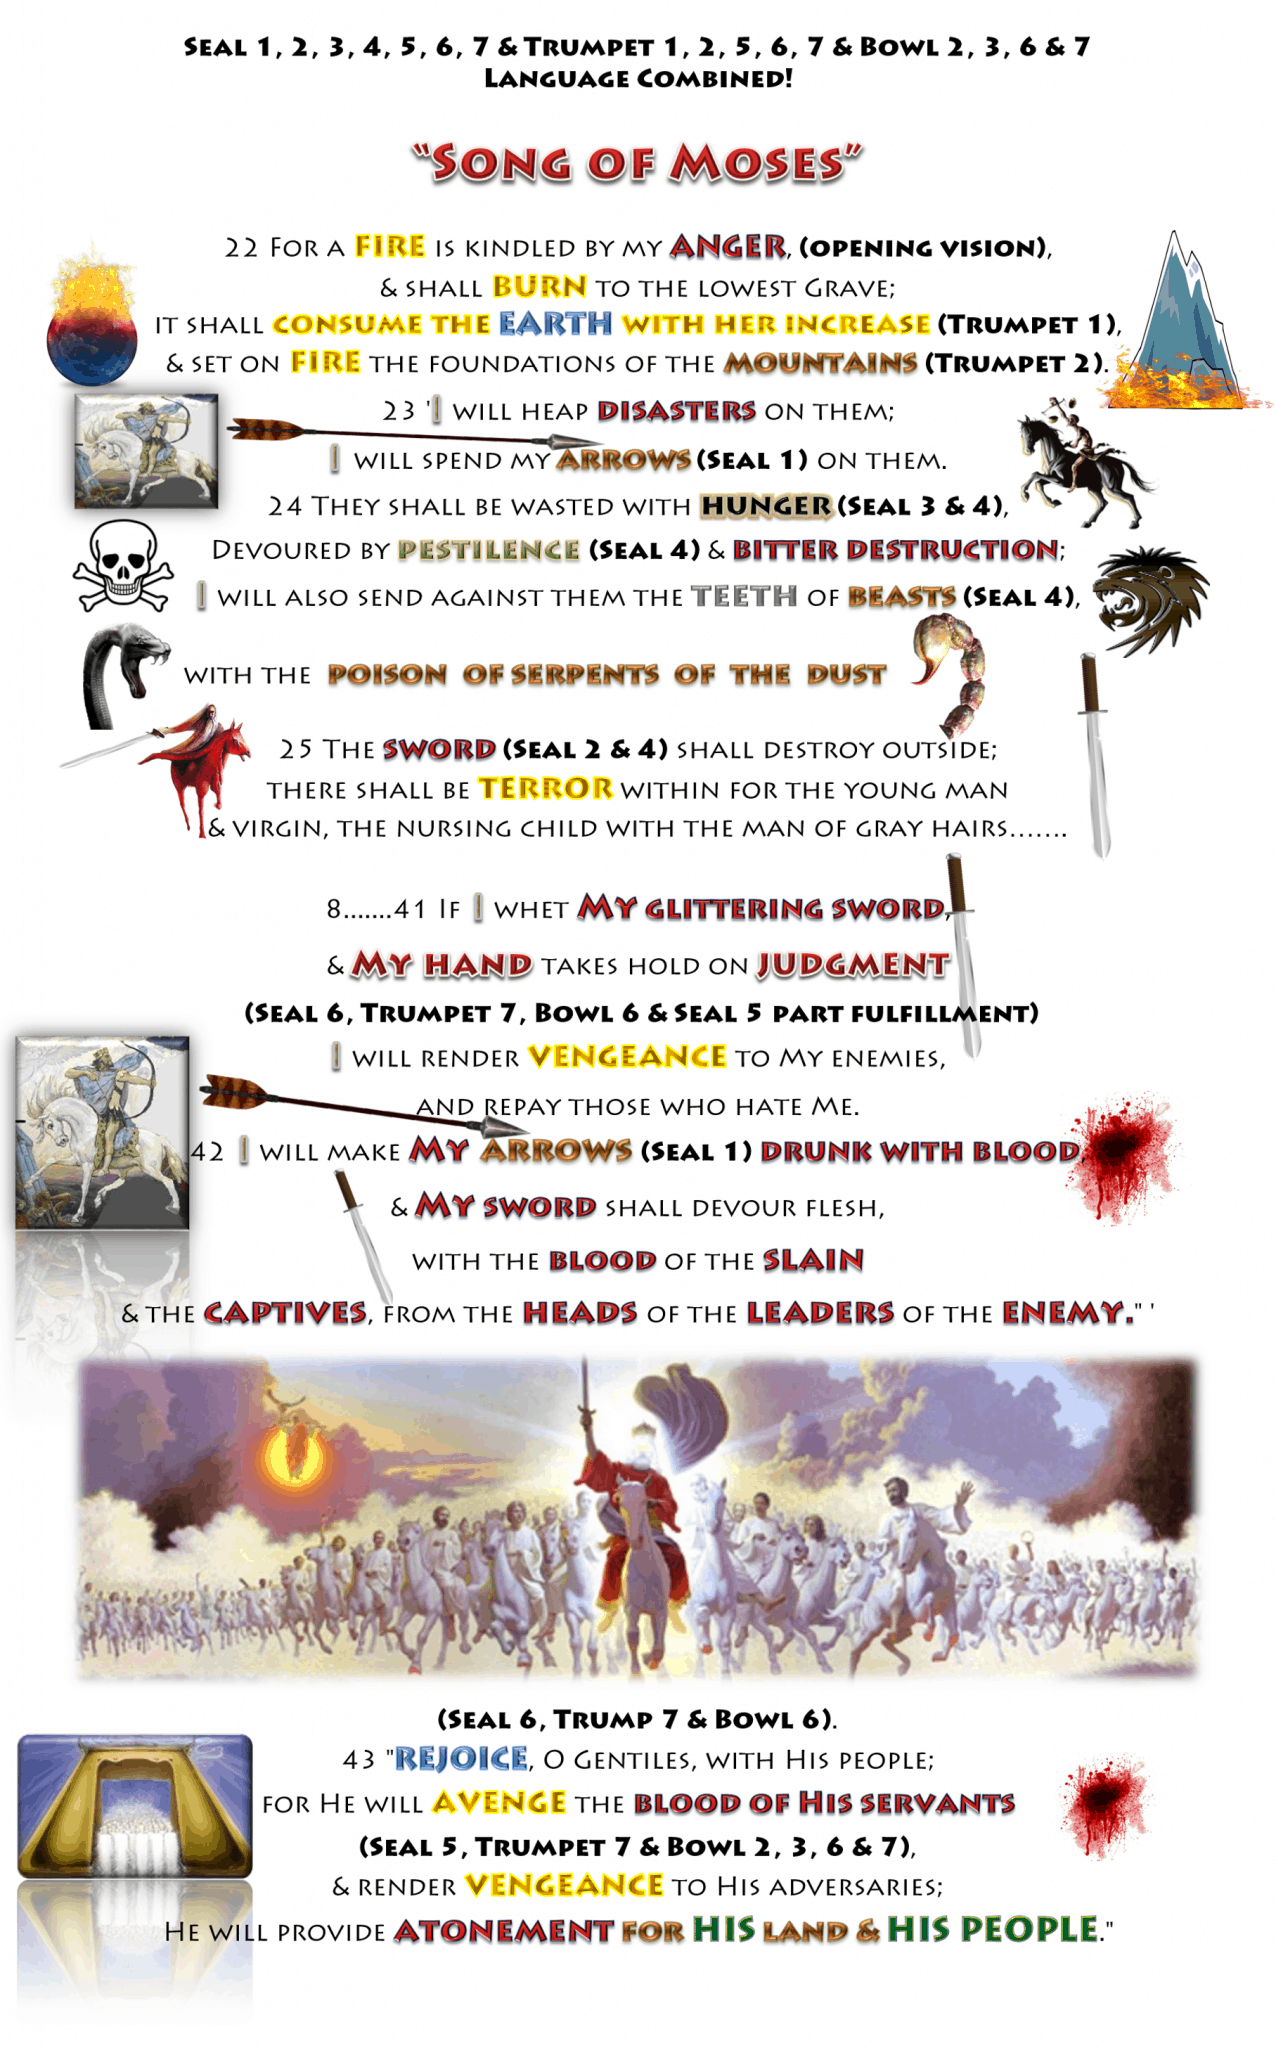 All 7 Seals in Matthew 24 & The Song of Moses Sung at Deuteronomy 32